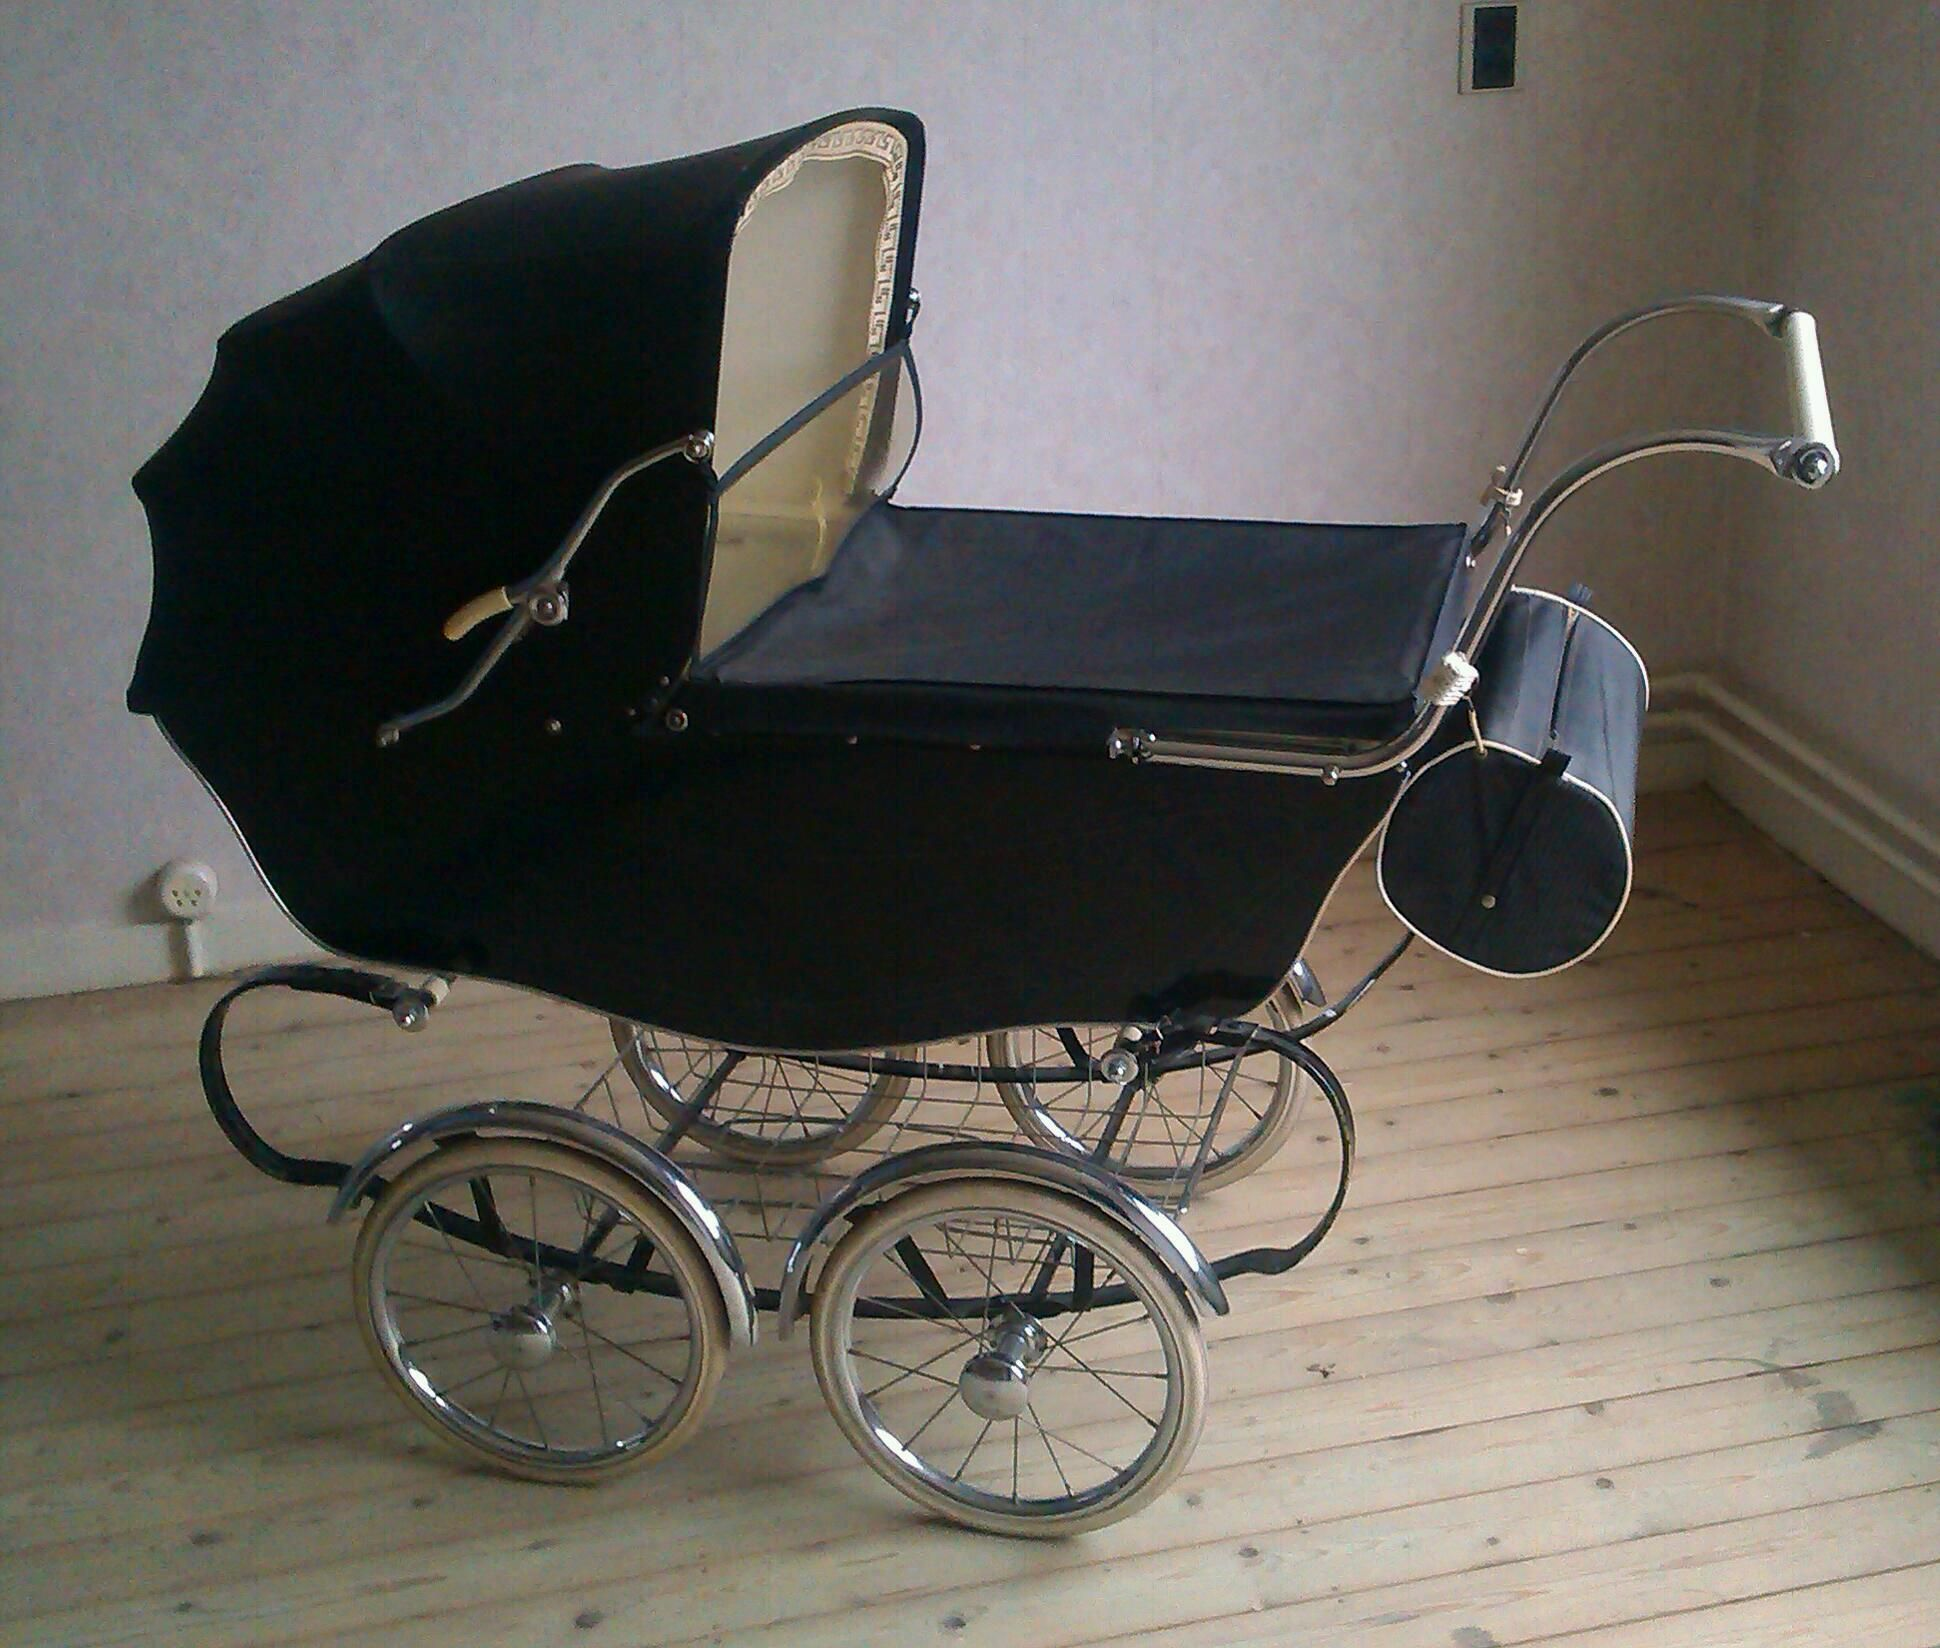 kinderwagen 1959 vintage kinderwagens pinterest. Black Bedroom Furniture Sets. Home Design Ideas